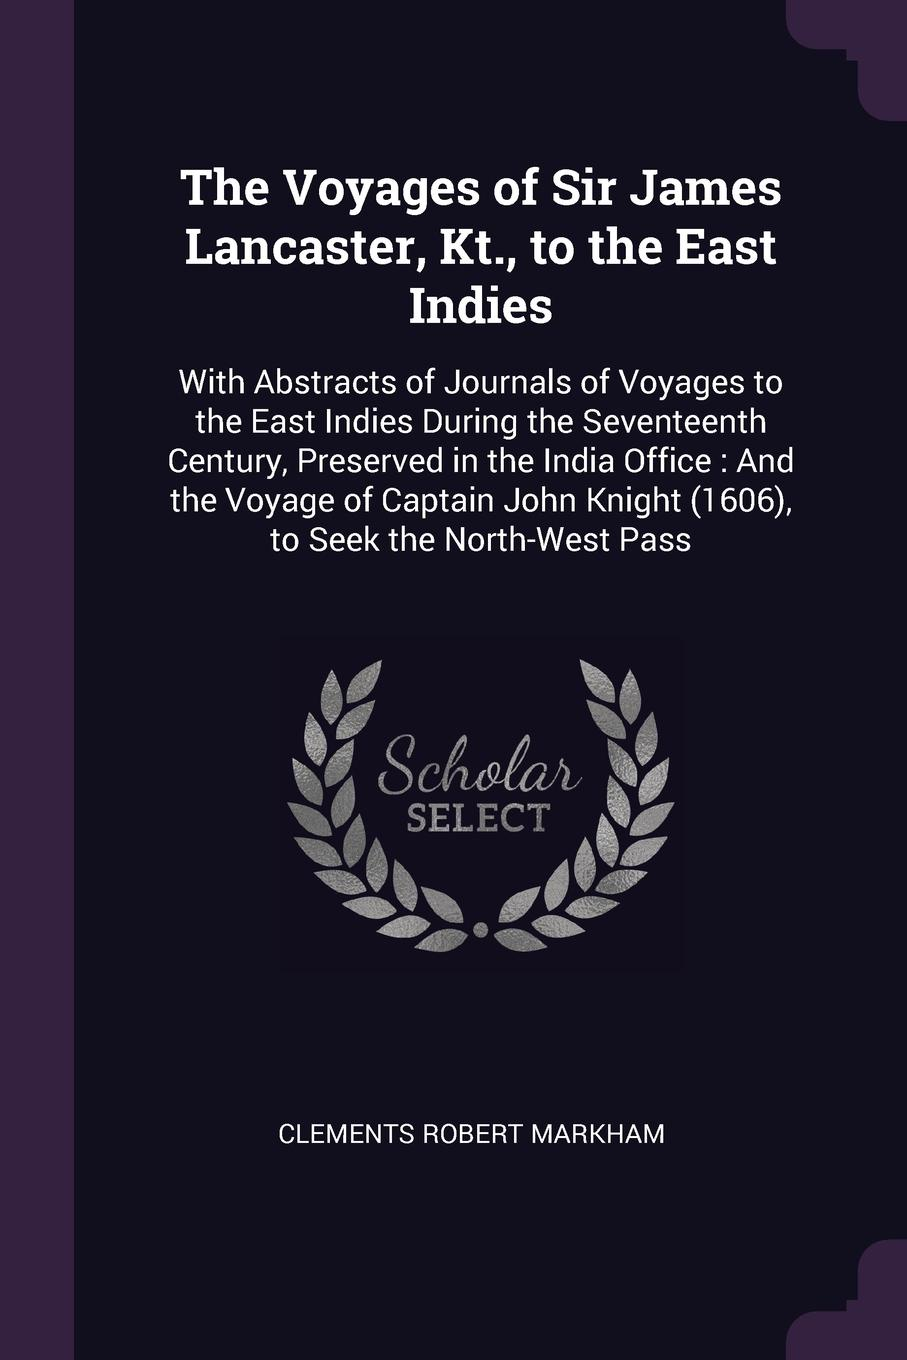 Clements Robert Markham The Voyages of Sir James Lancaster, Kt., to the East Indies. With Abstracts of Journals of Voyages to the East Indies During the Seventeenth Century, Preserved in the India Office : And the Voyage of Captain John Knight (1606), to Seek the North-W... цены онлайн